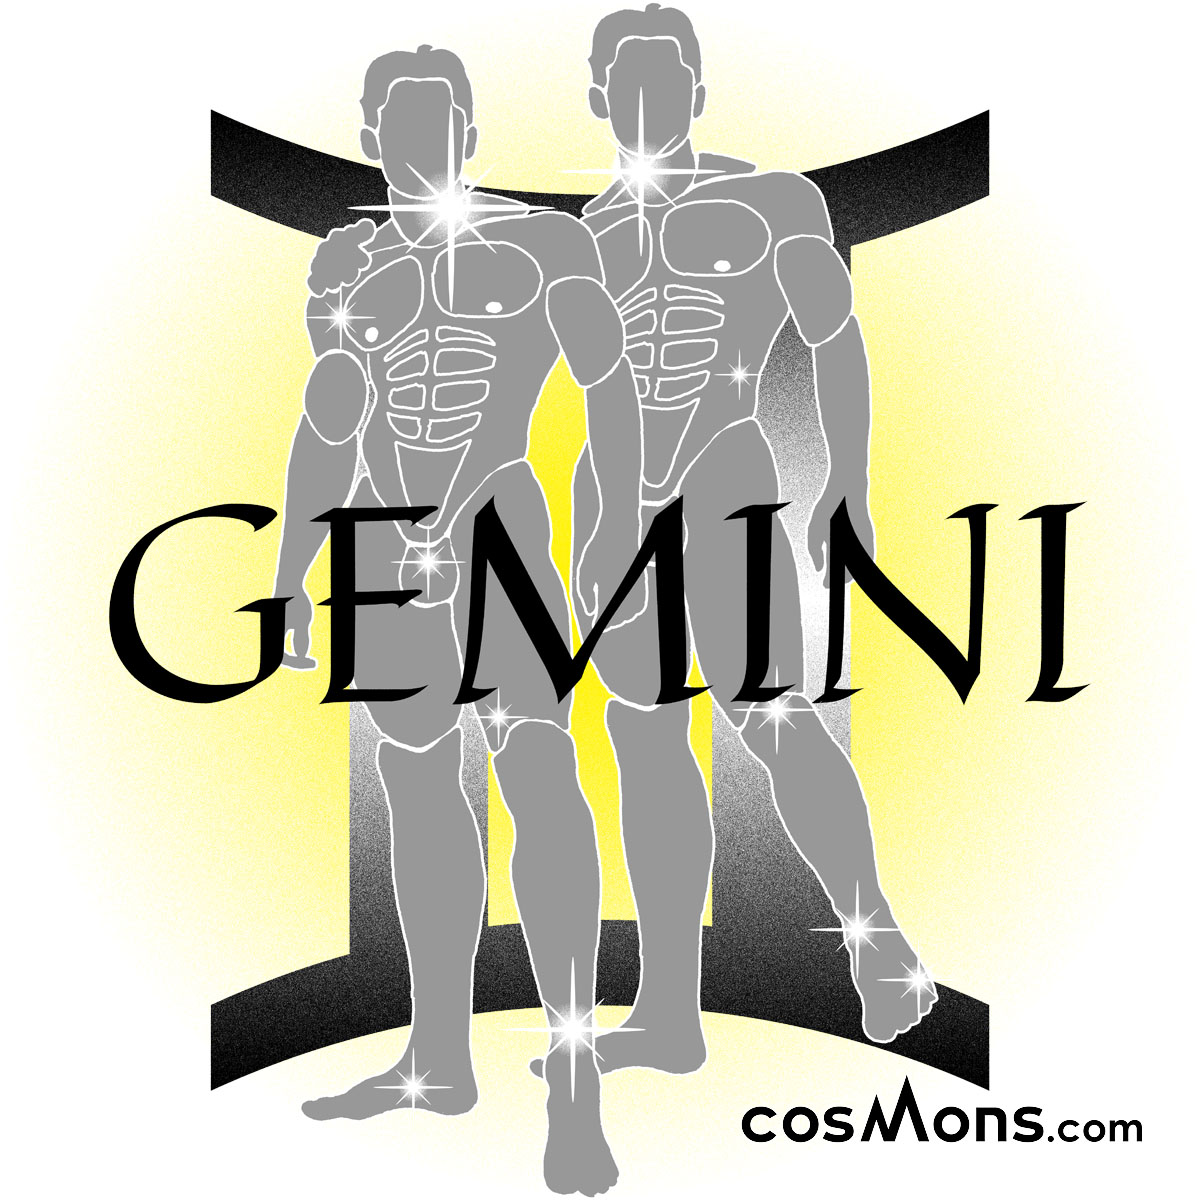 Gemini Zodiac Sign: The Twins In One Mind - COSMONS